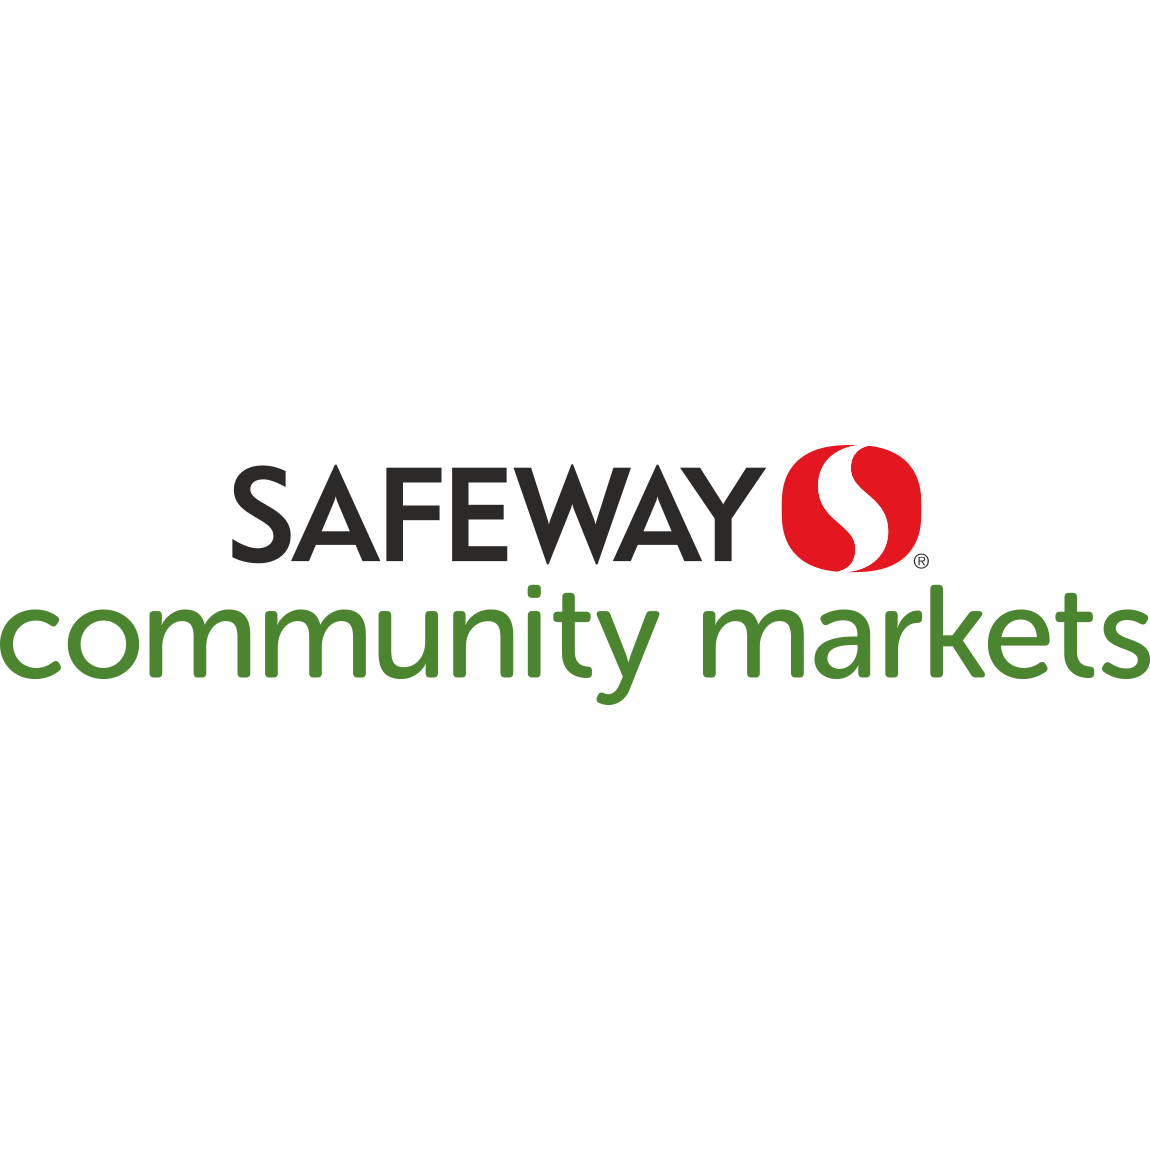 Safeway Community Markets